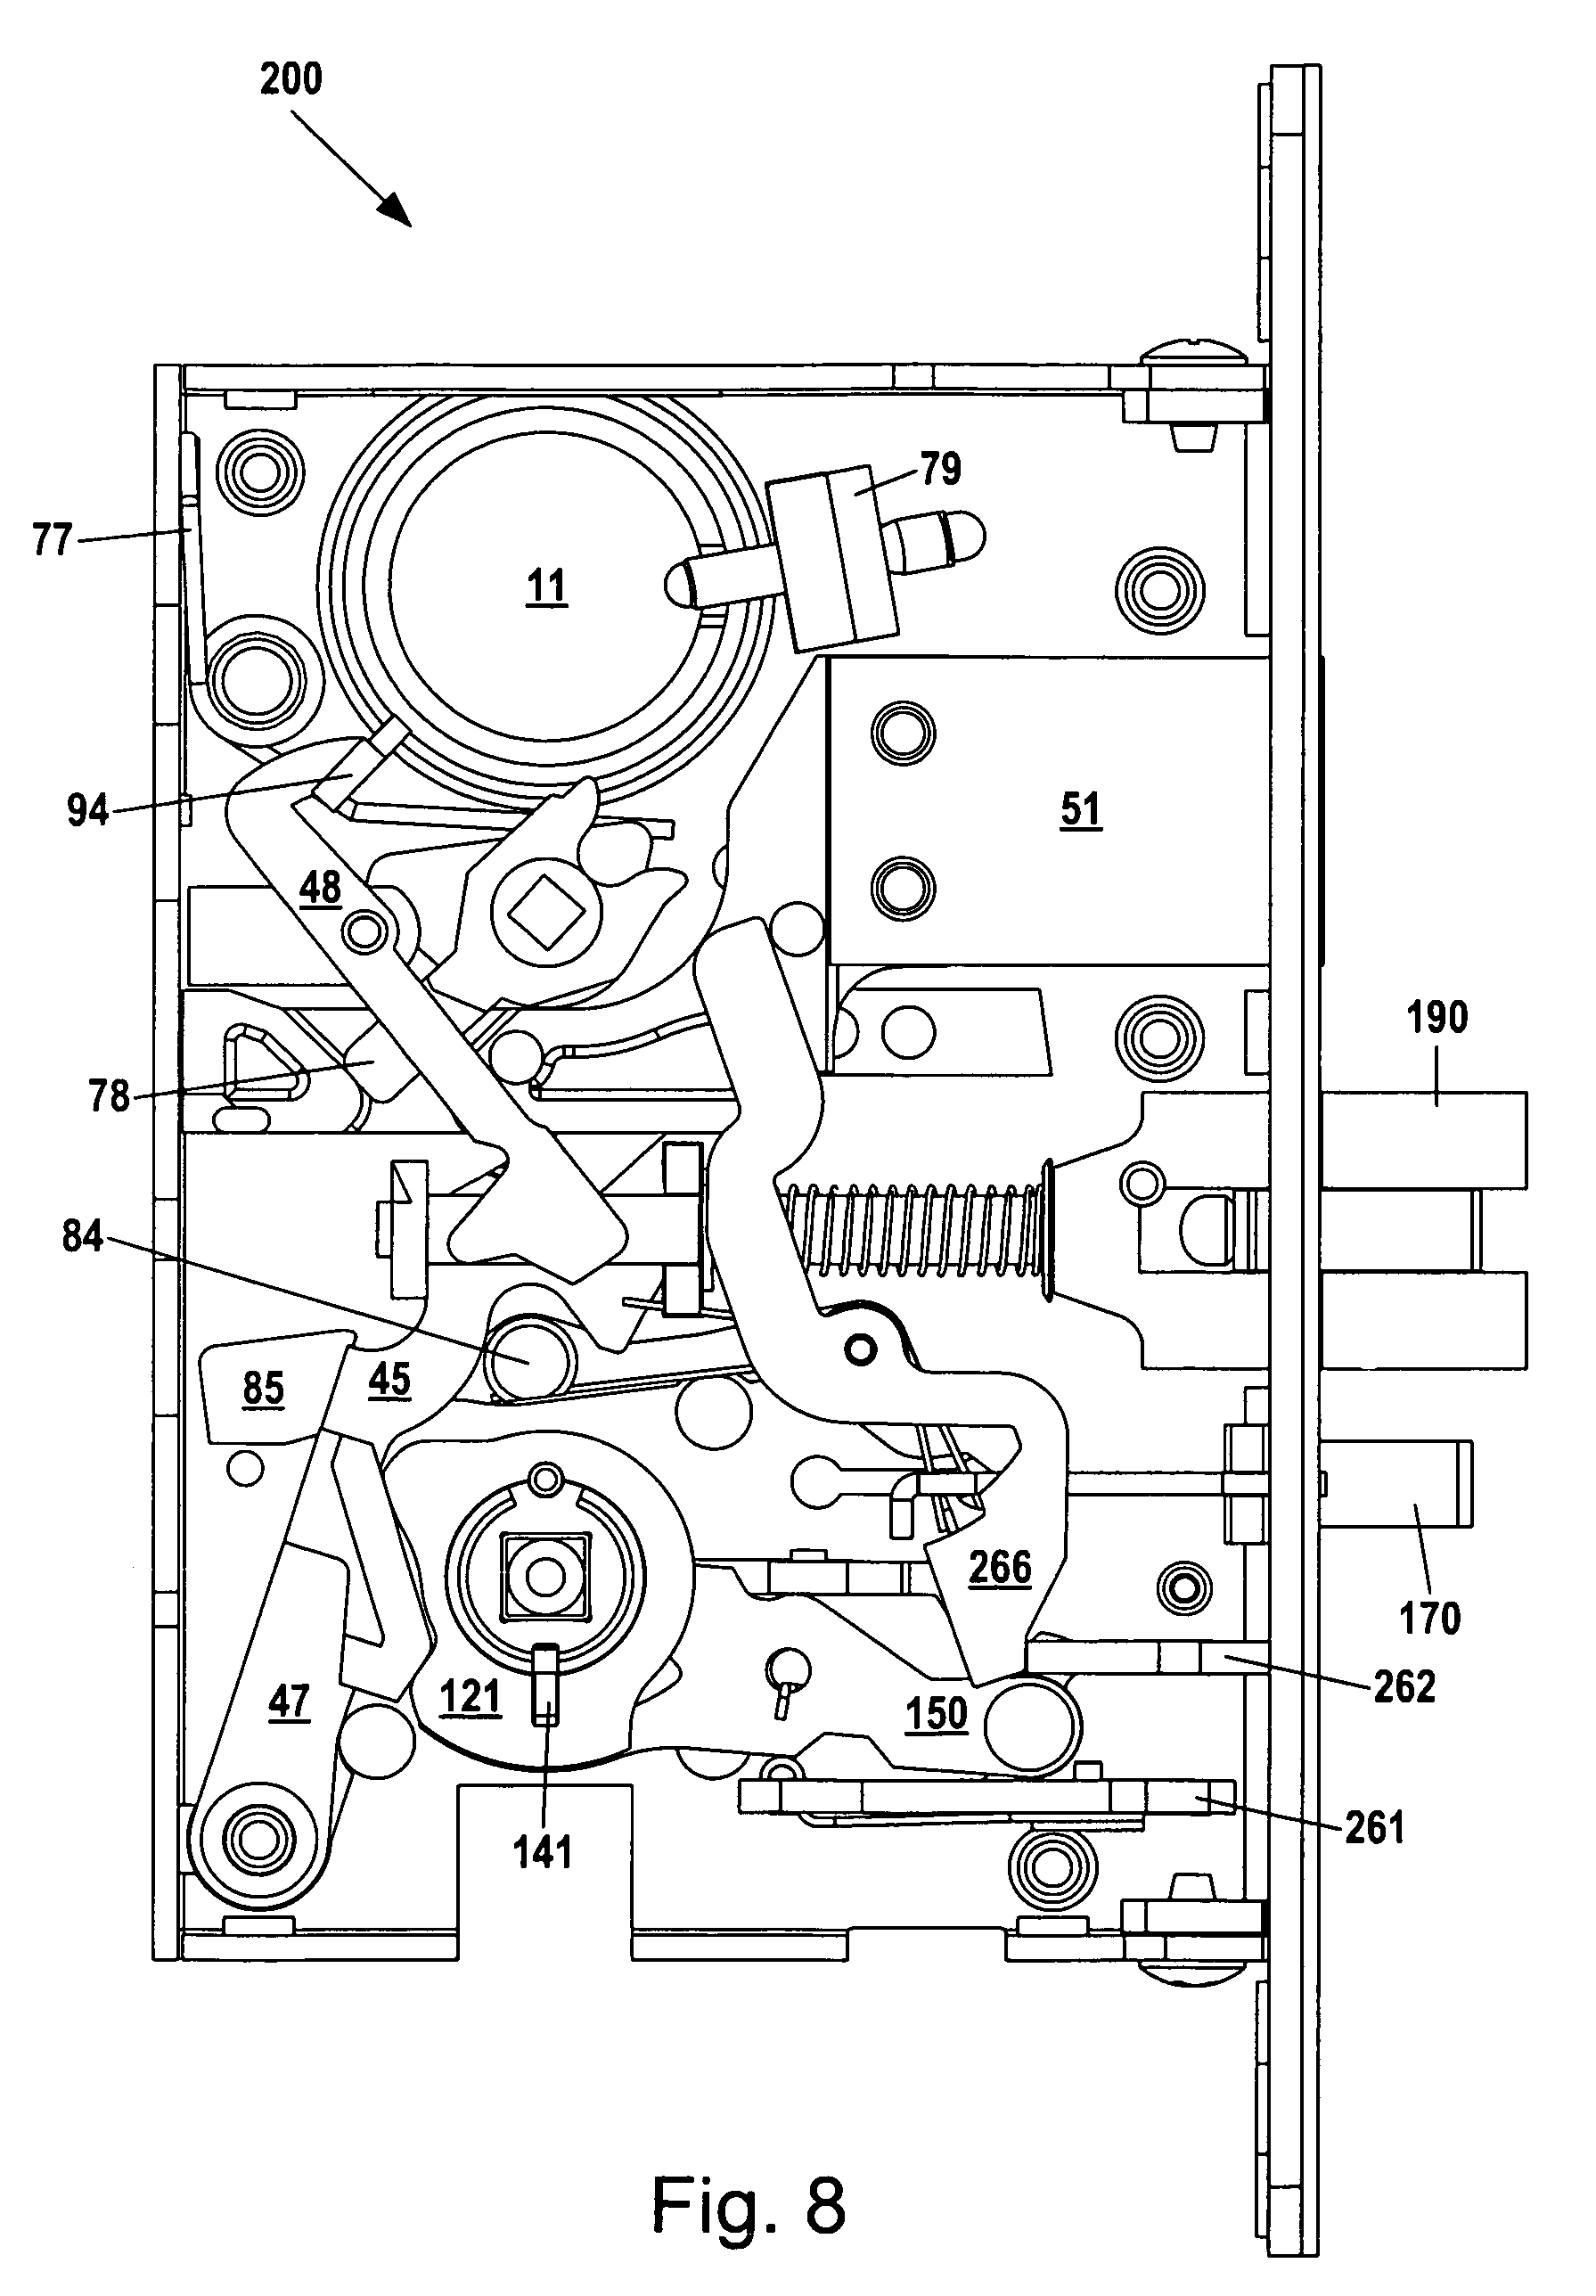 Brevet Us8292336 Mortise Lock Assembly Google Brevete